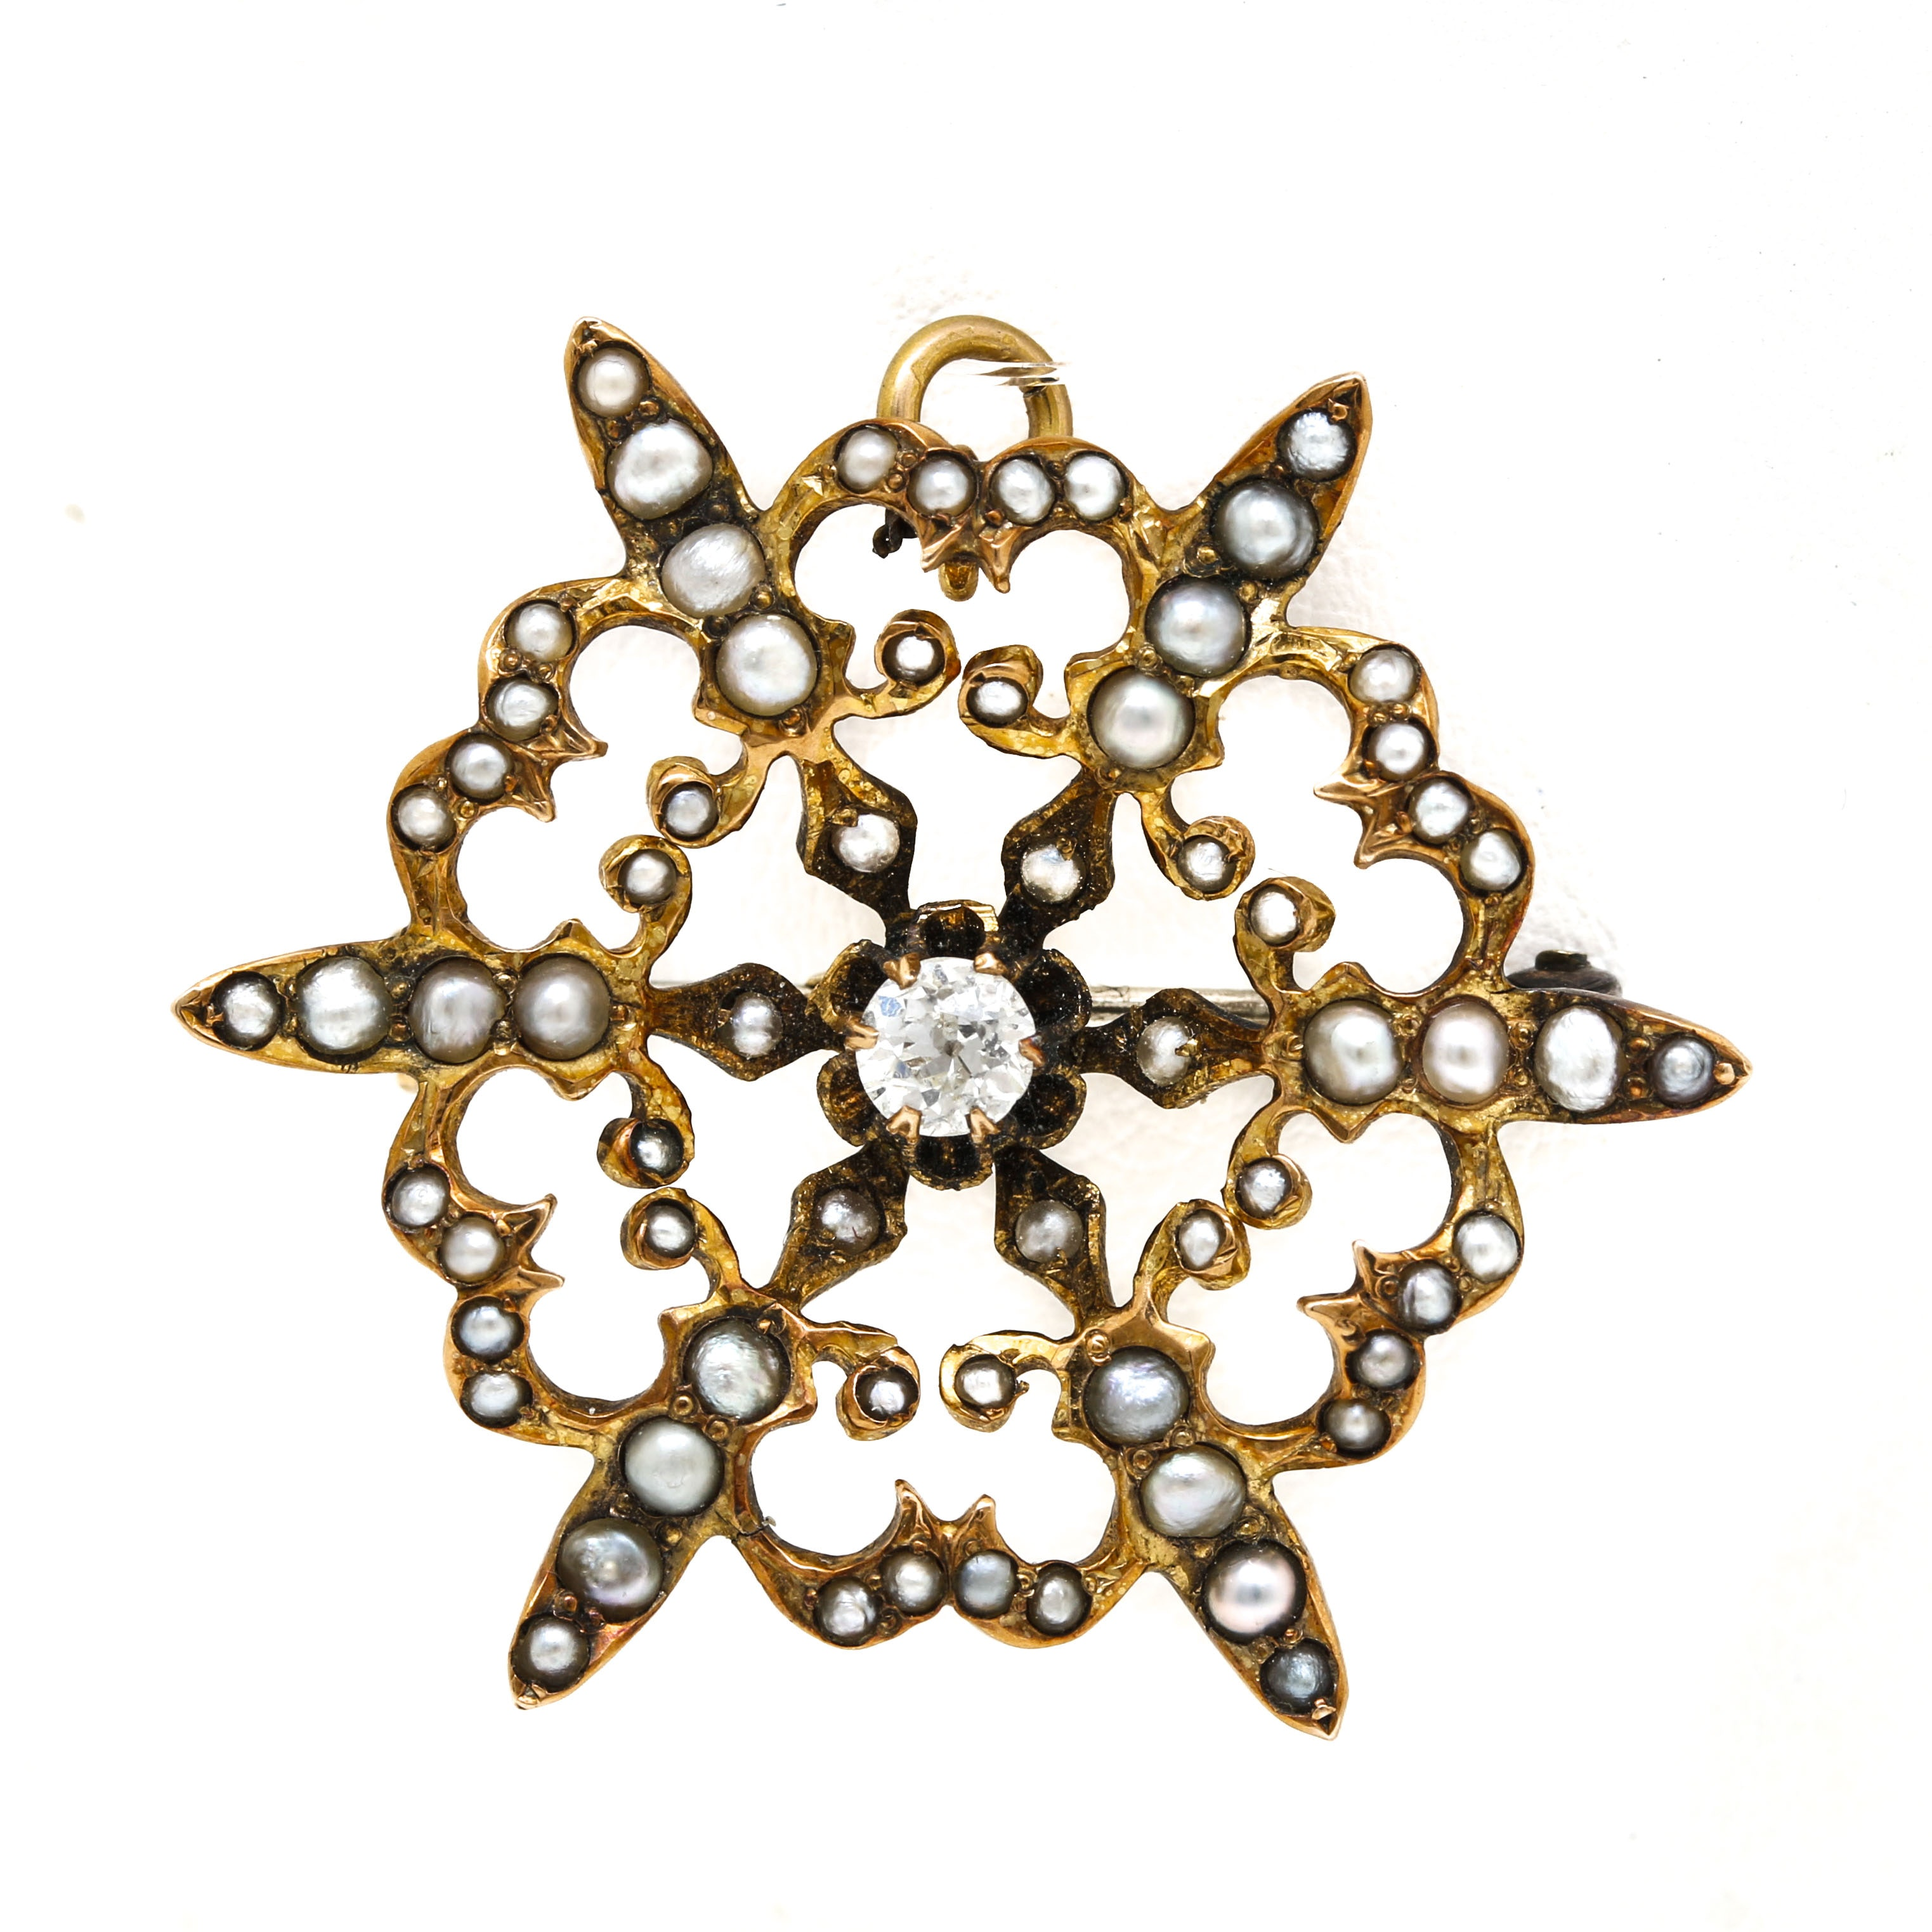 Antique 10K Yellow Gold Diamond and Pearl Brooch